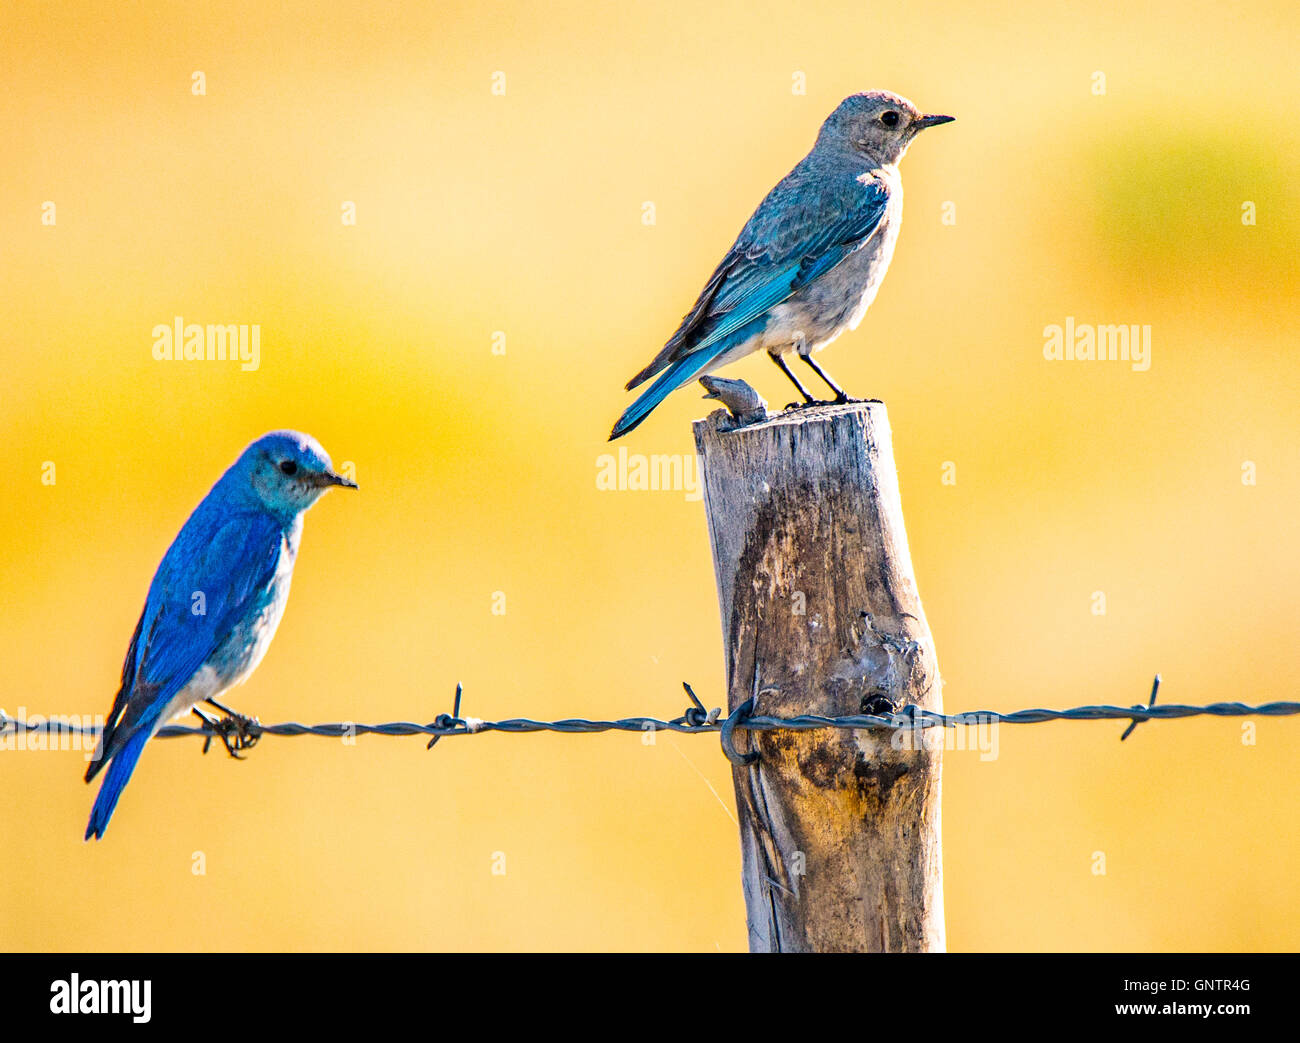 Male and Female Mountain Blue Birds perched on fence post. Idaho  State Bird, Idaho, USA - Stock Image